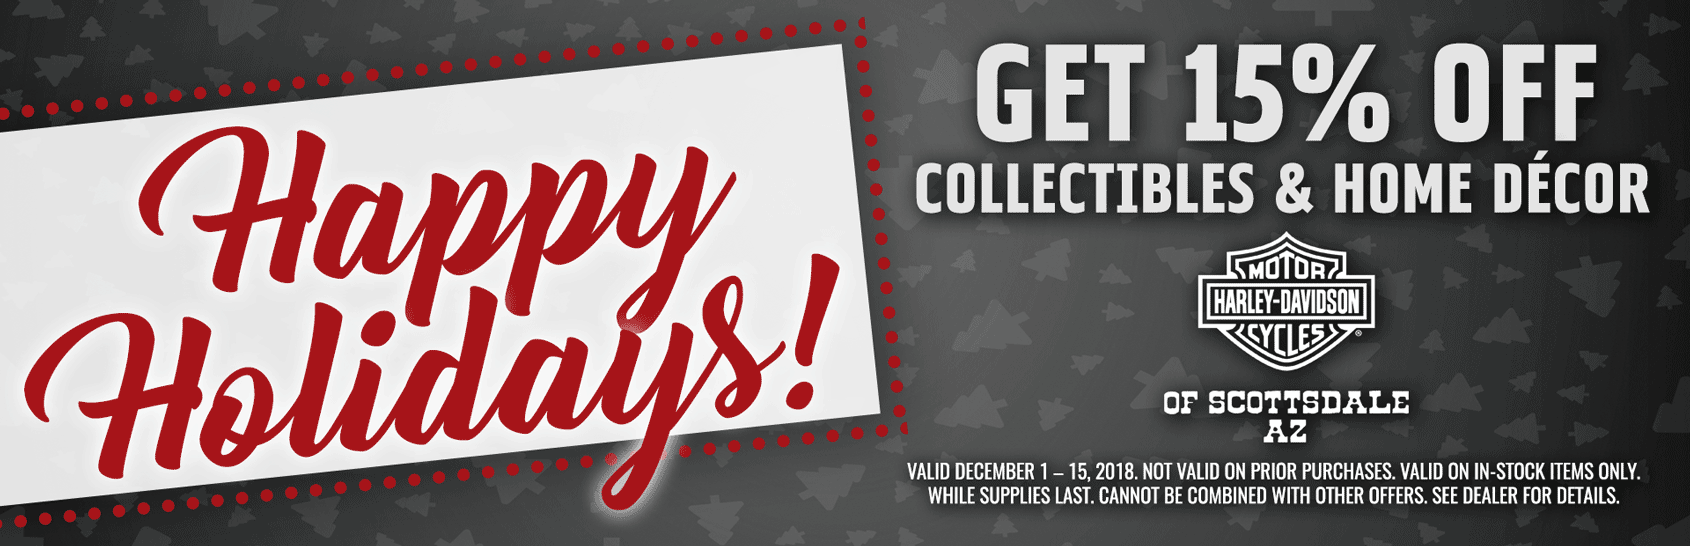 15% off collectibles & home decor